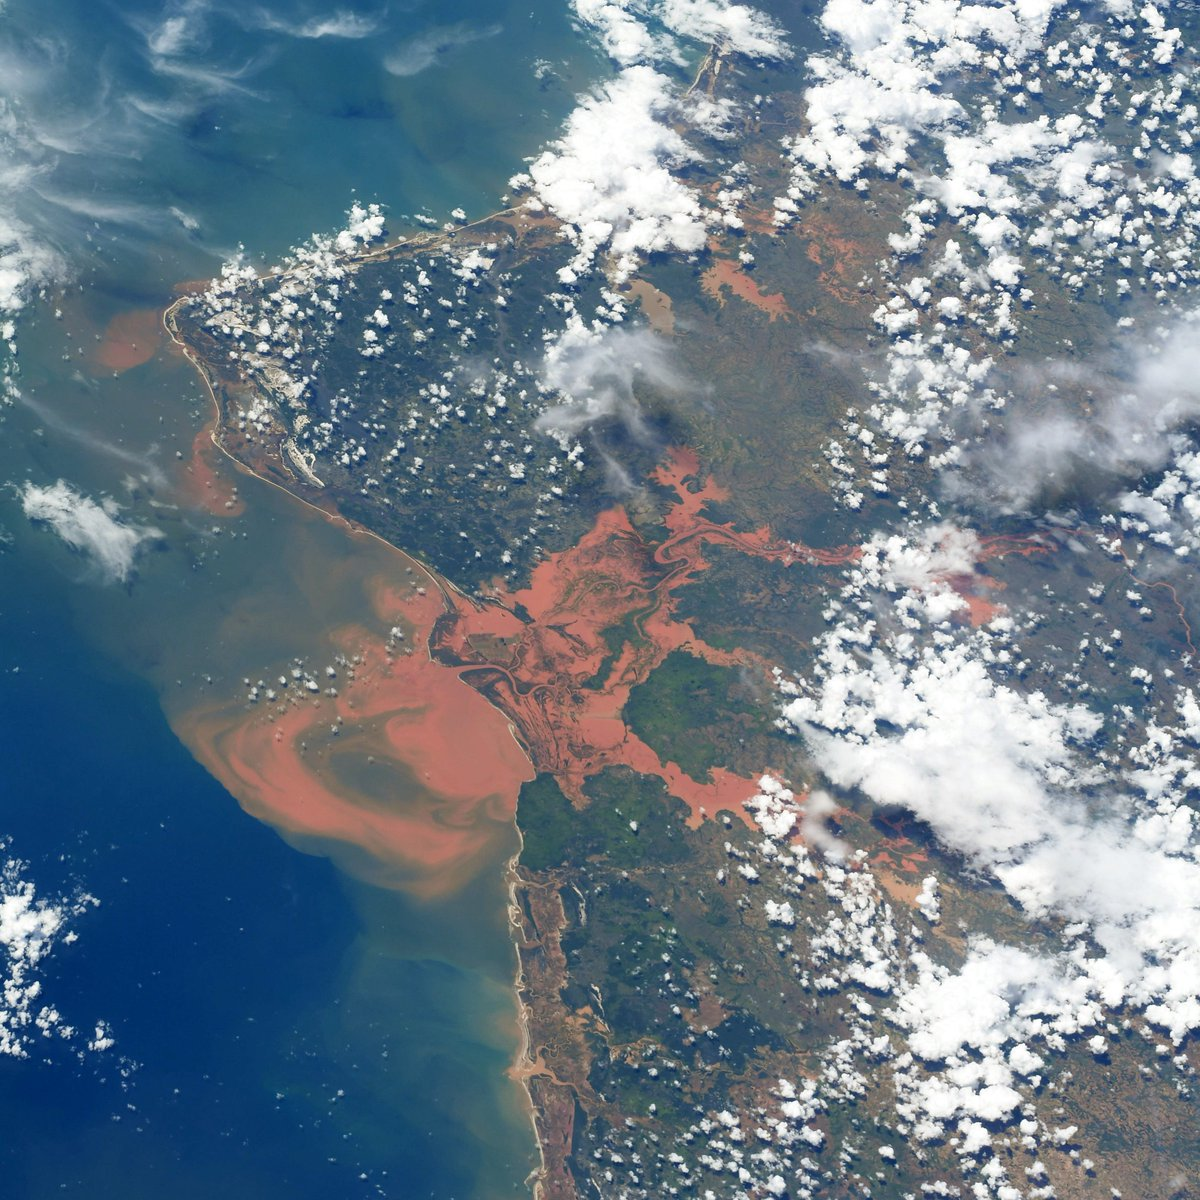 Northwest Madagascar, where the rivers run red in extreme flooding. Our thoughts are with those affected. Stay safe.